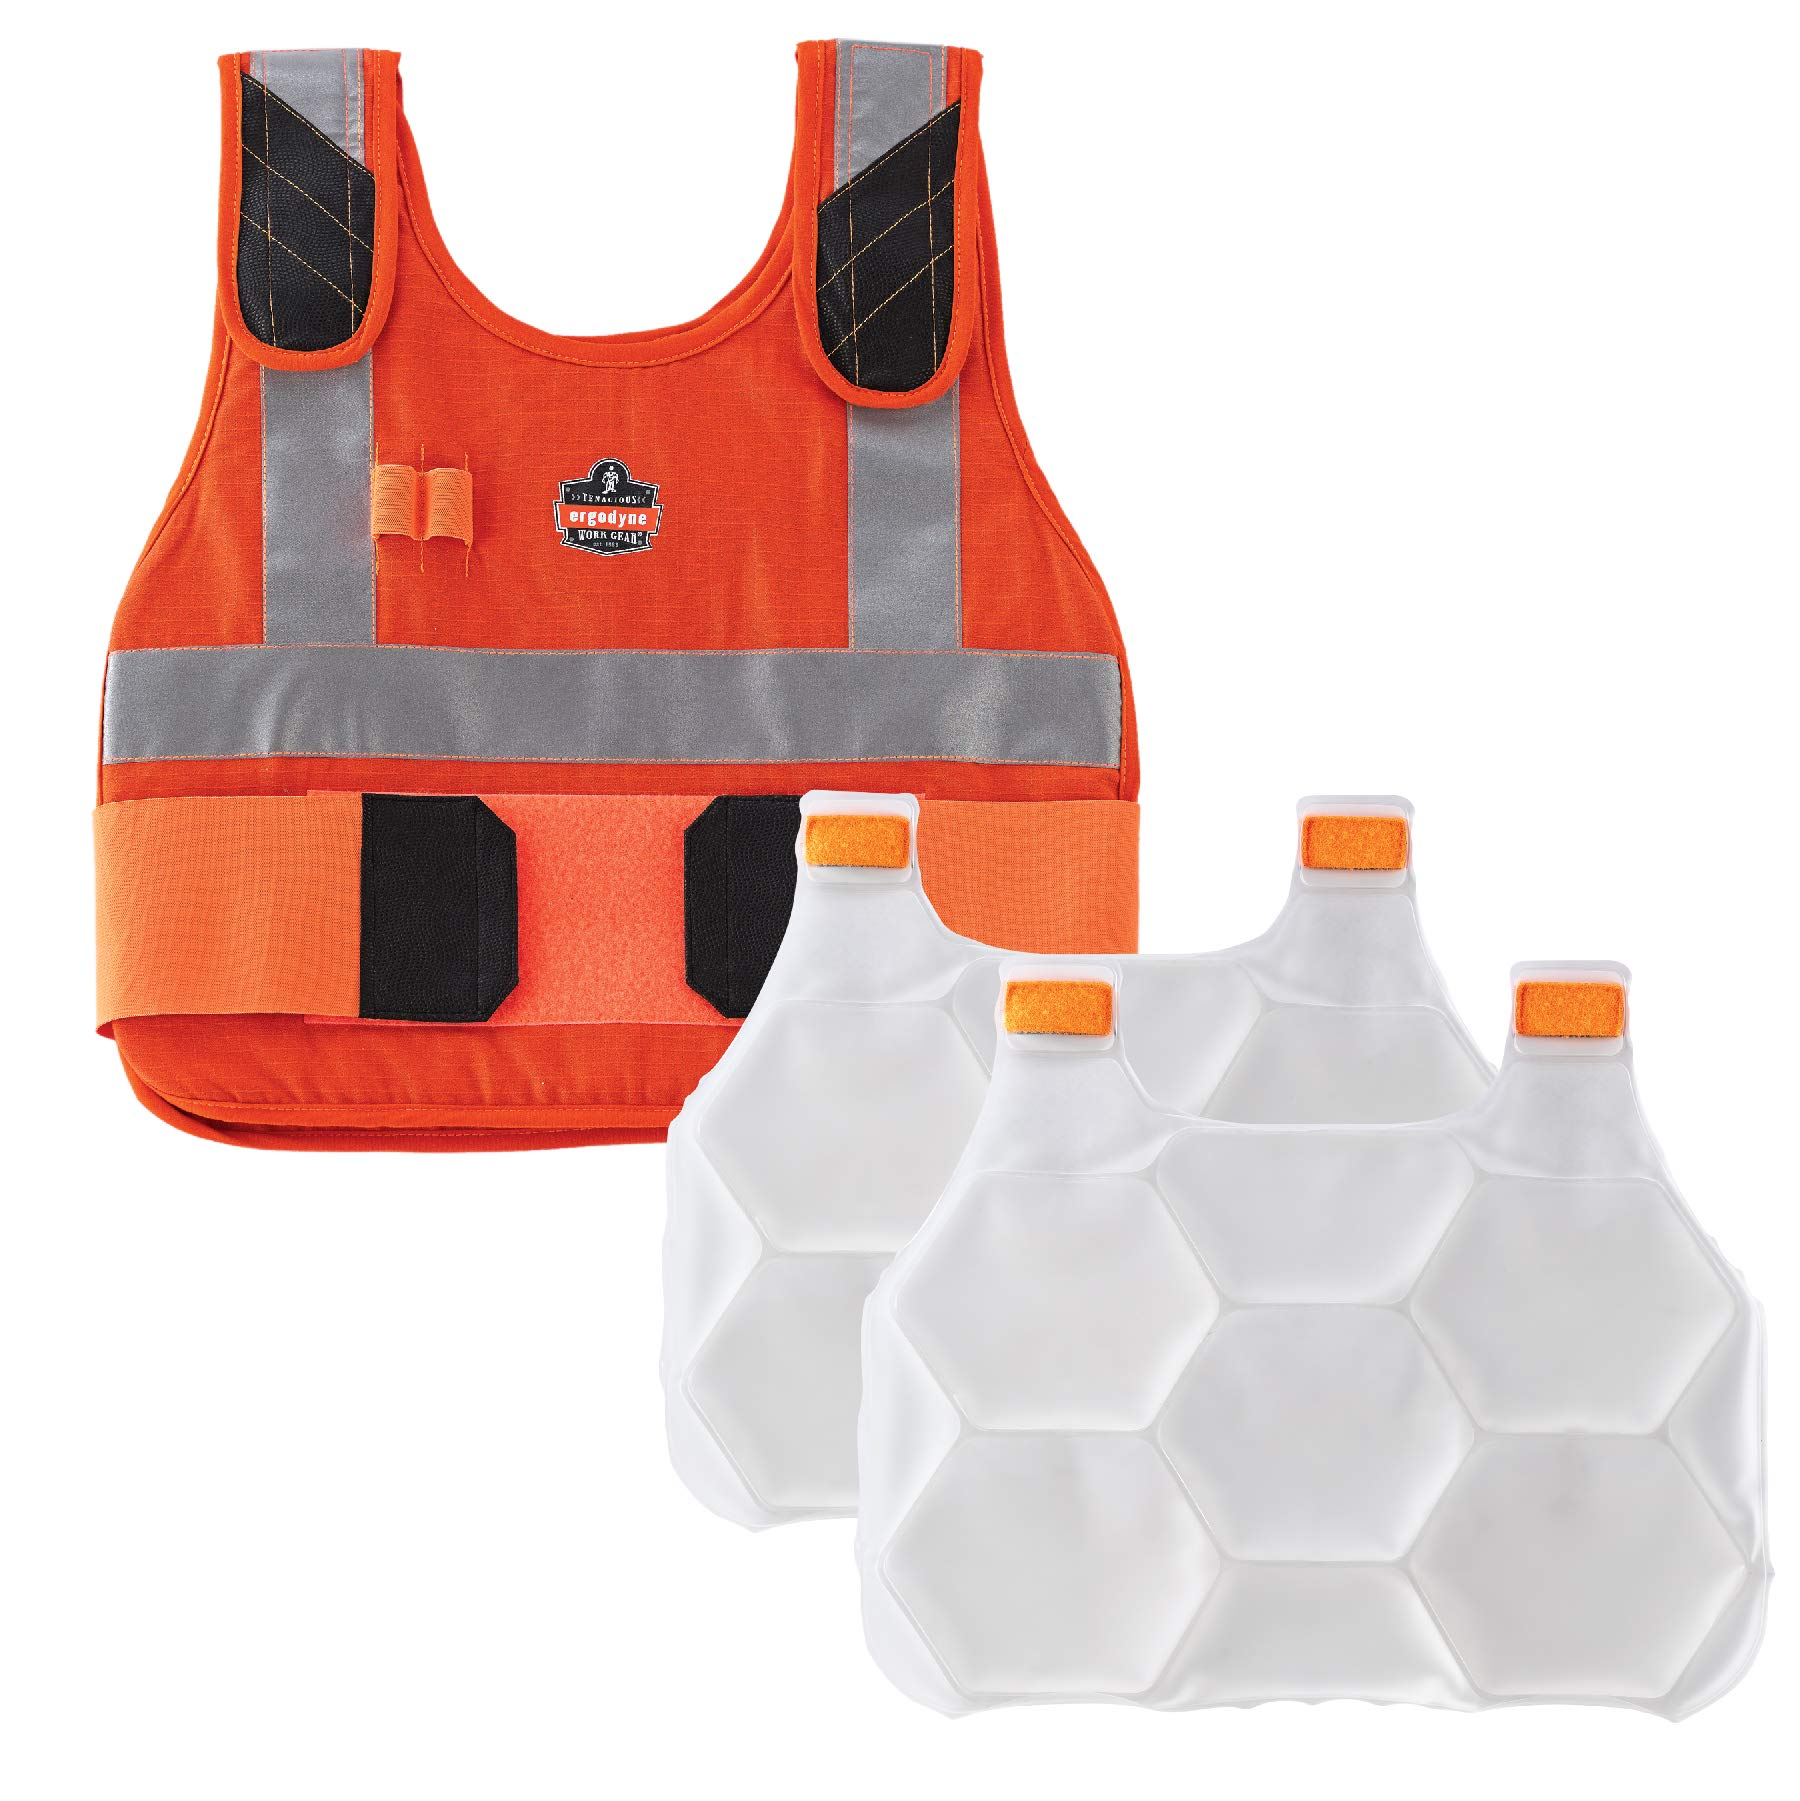 Ergodyne Chill-Its 6215 Fire Resistant/Rated High Visibility Cooling Vest, L/XL, Orange by Ergodyne (Image #1)